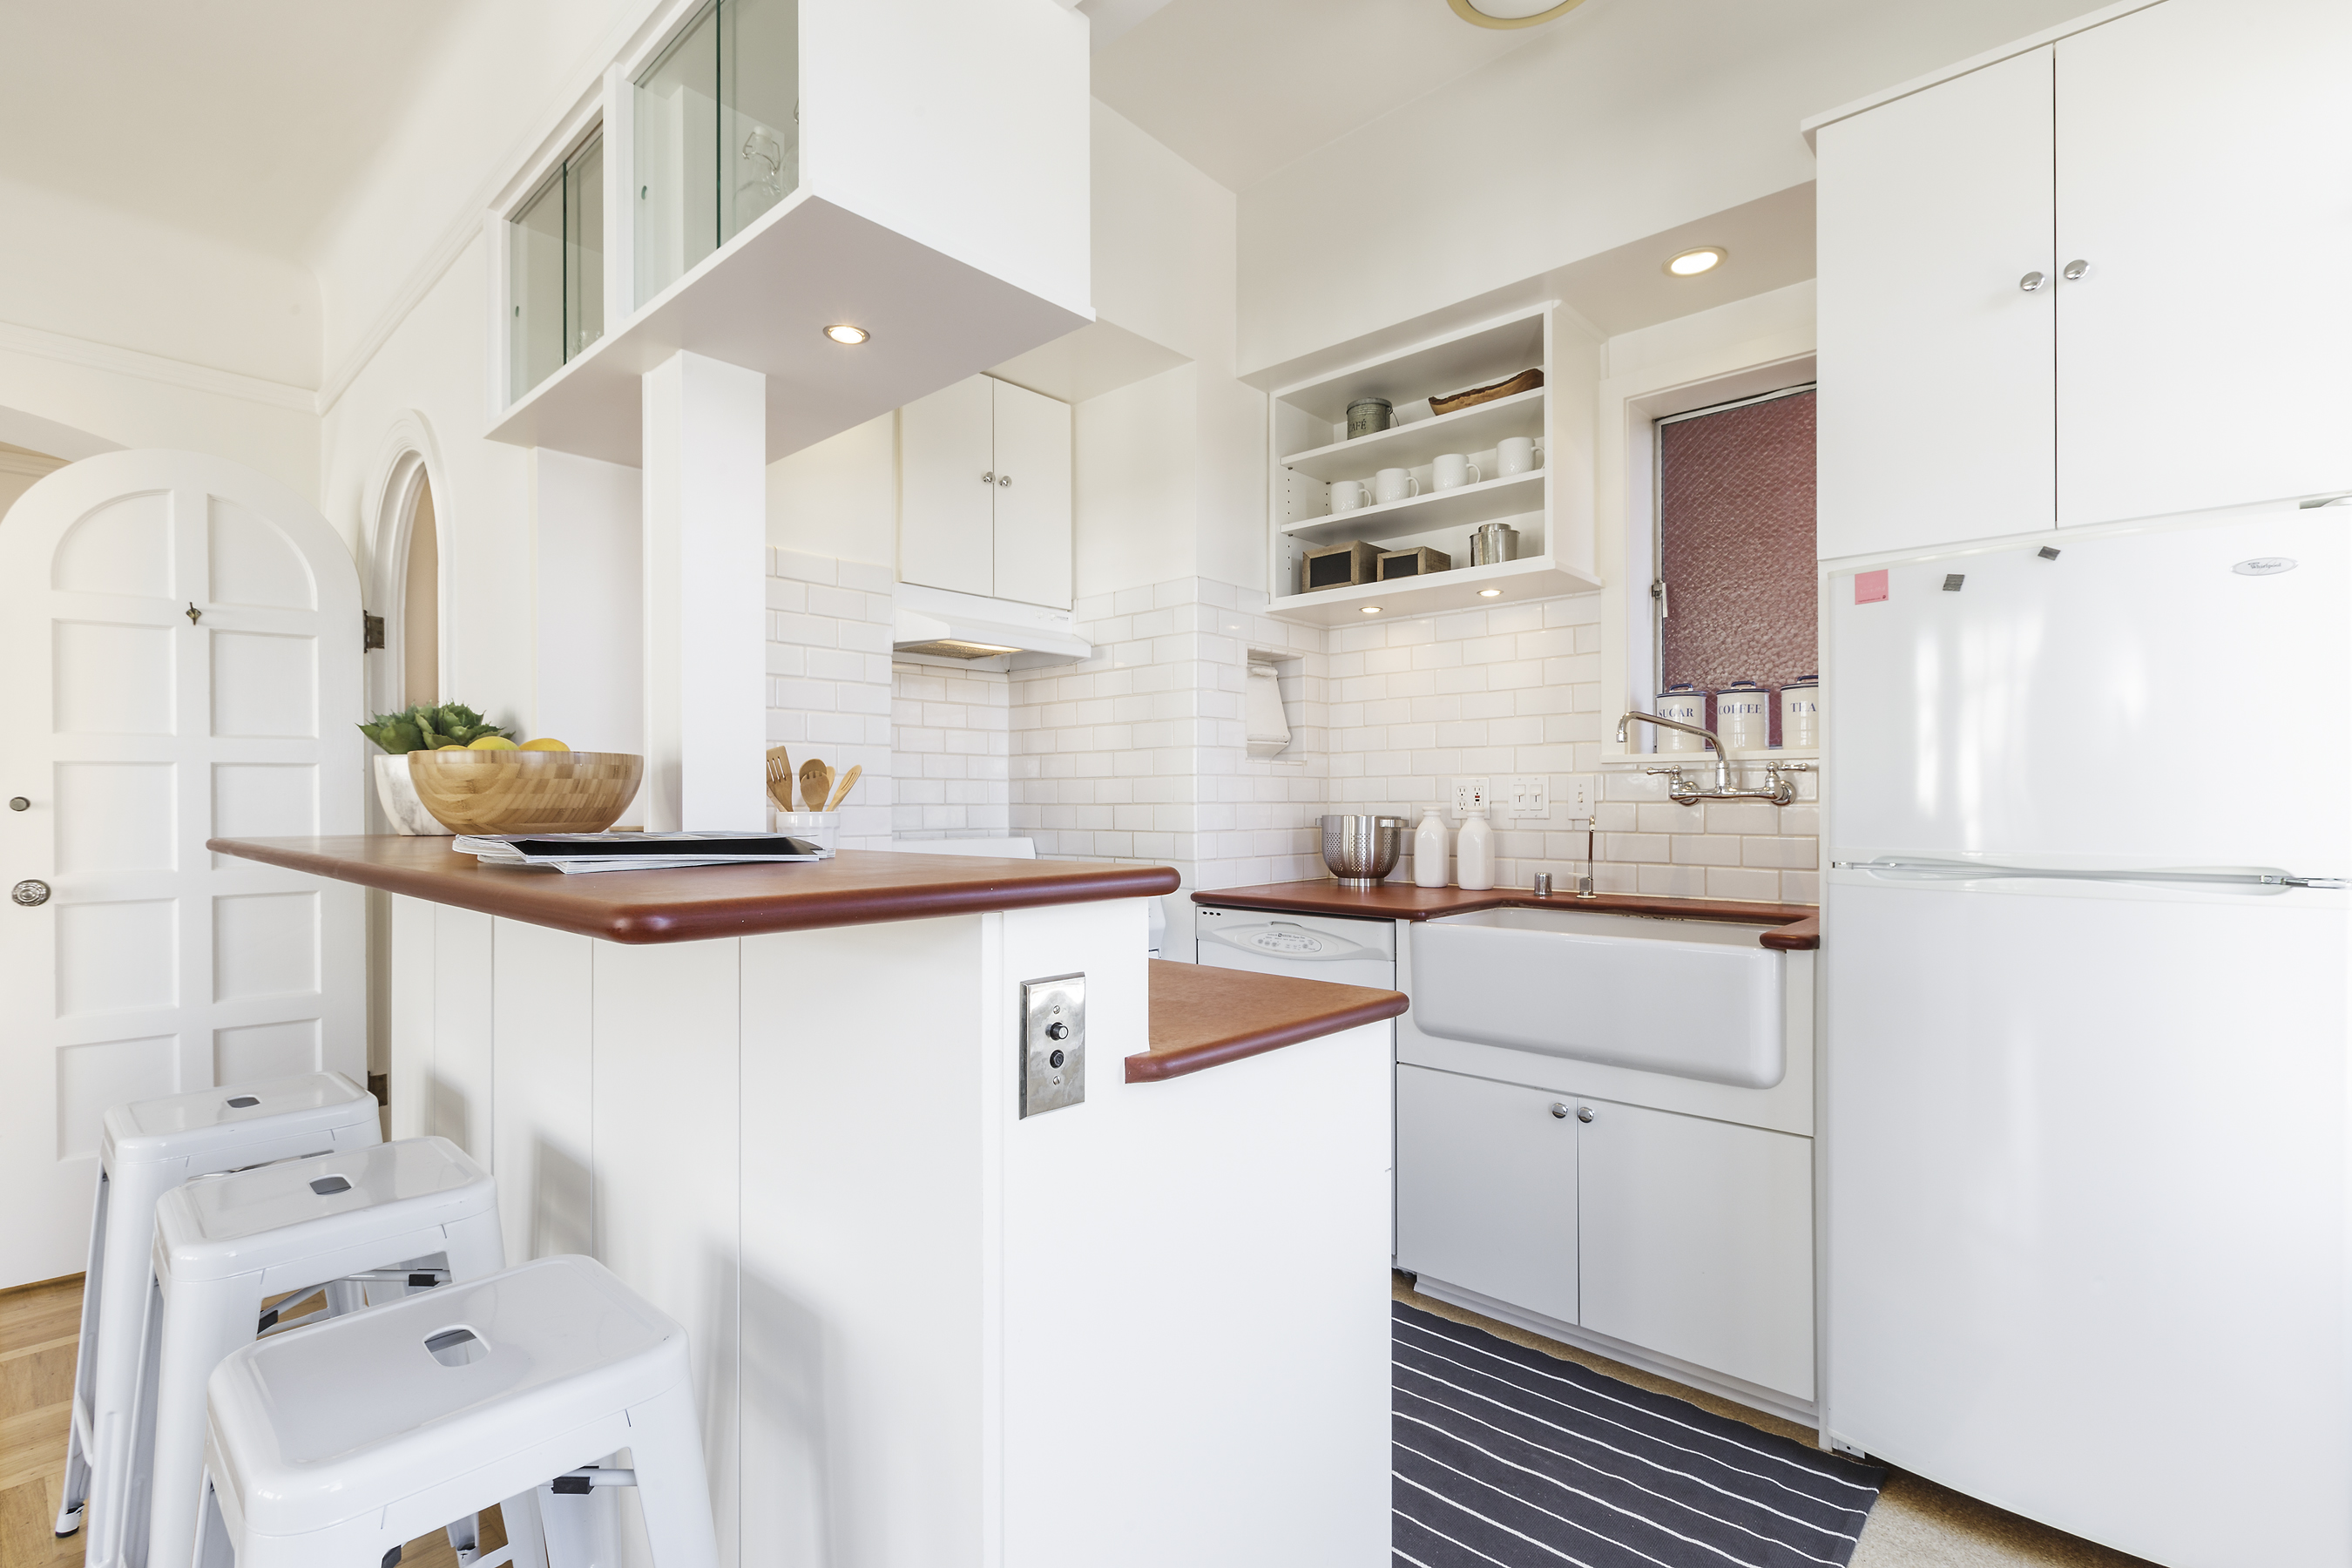 666 Post #1201 | Downtown / Union Square | $732,500 – theFrontSteps ...